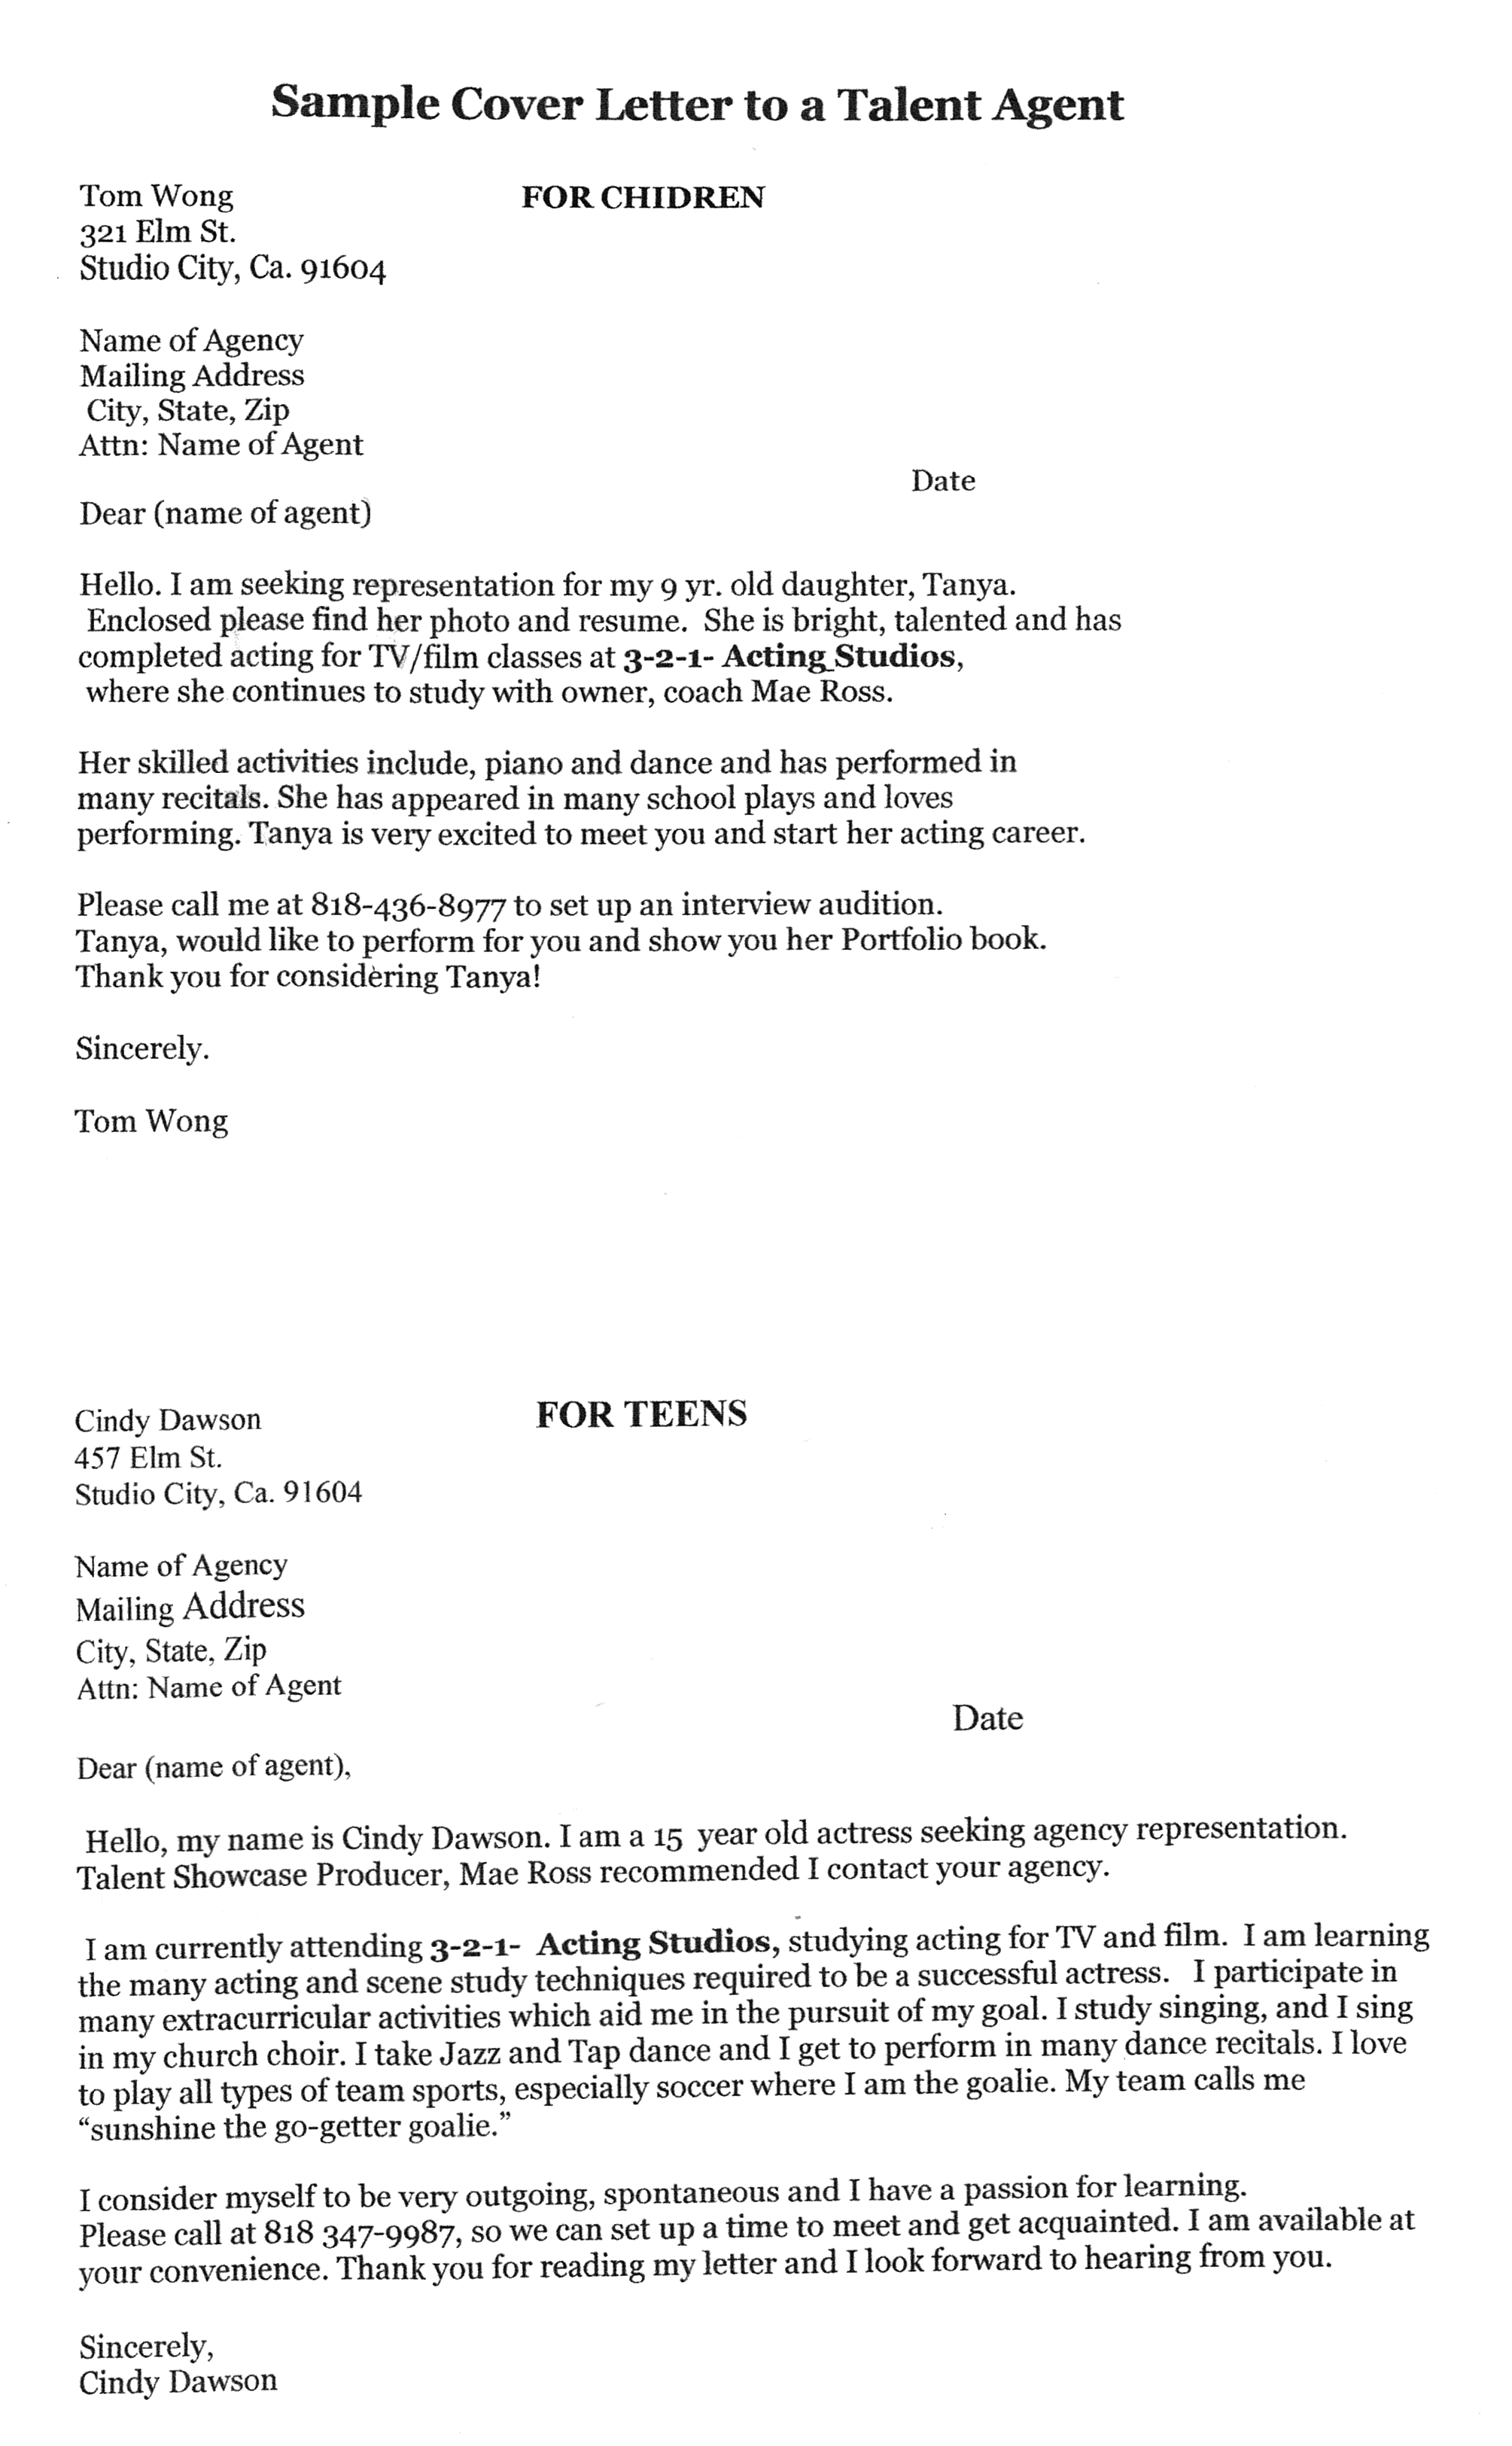 cover letter for agency representation - Bolan ...